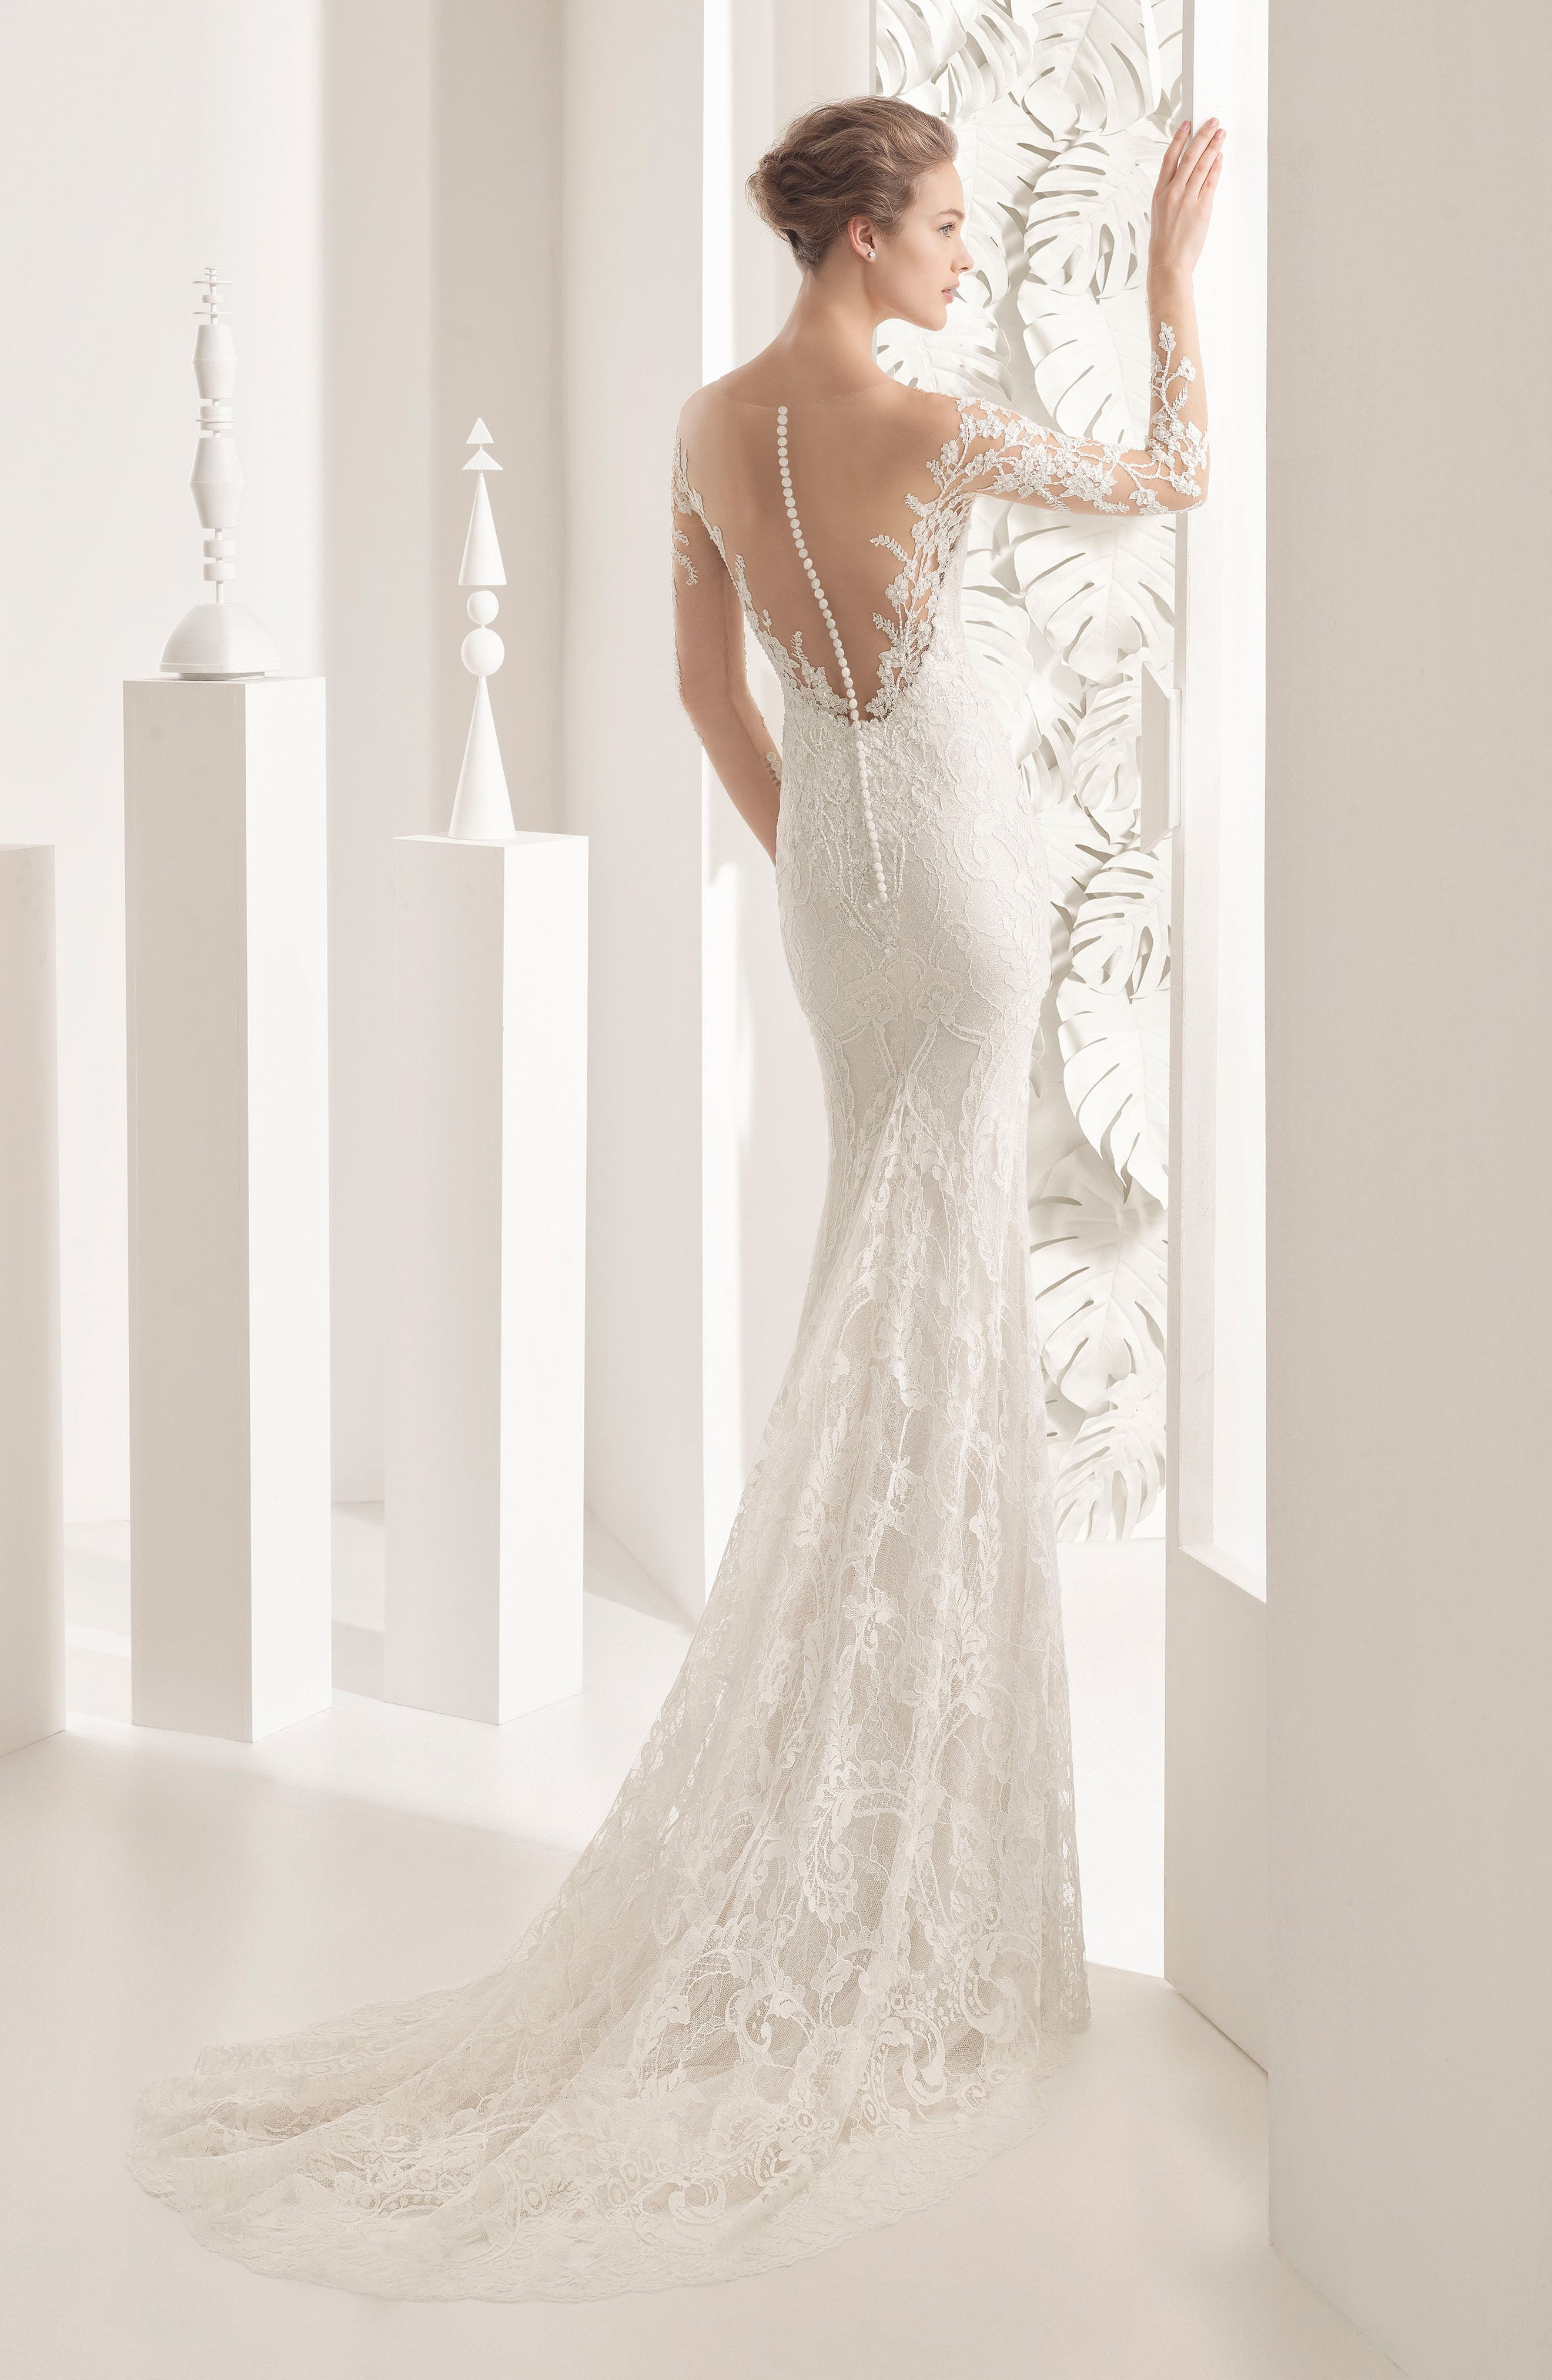 Naim Strapless Illusion Lace Mermaid Gown,                             Alternate thumbnail 2, color,                             900